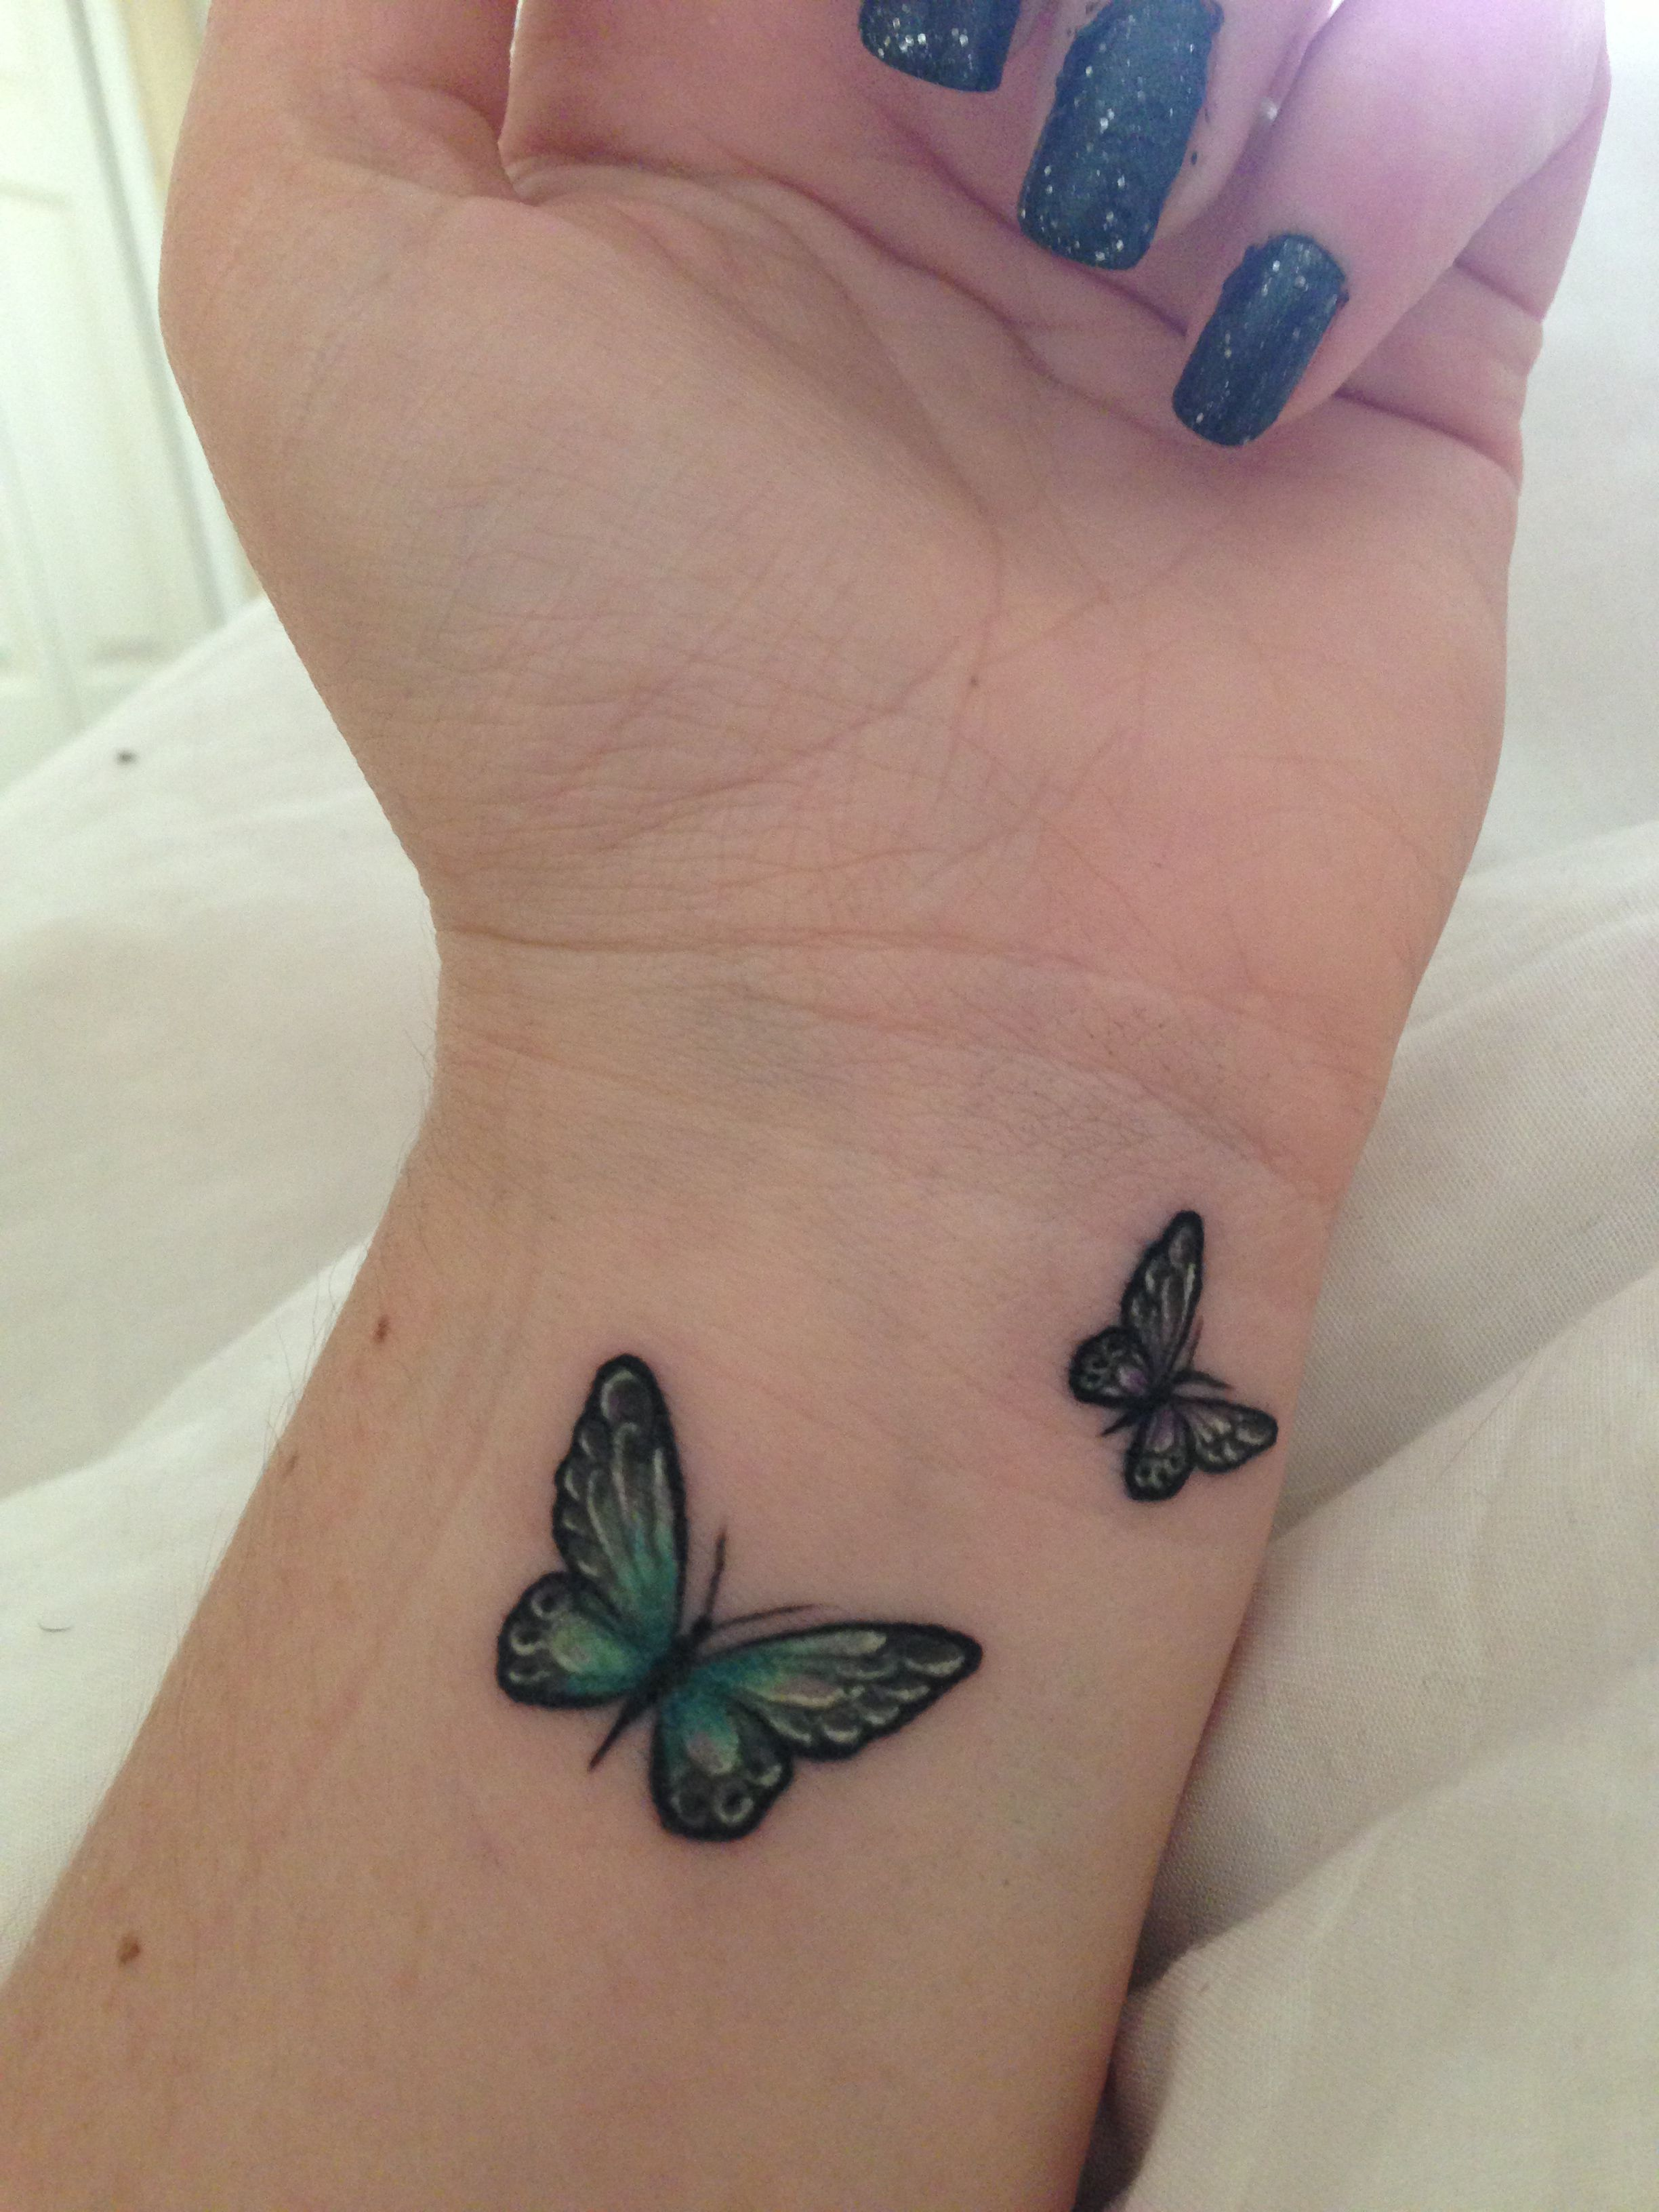 25 small tribal tattoos on wrist butterfly wrist tattoo for Butterfly tattoo wrist designs